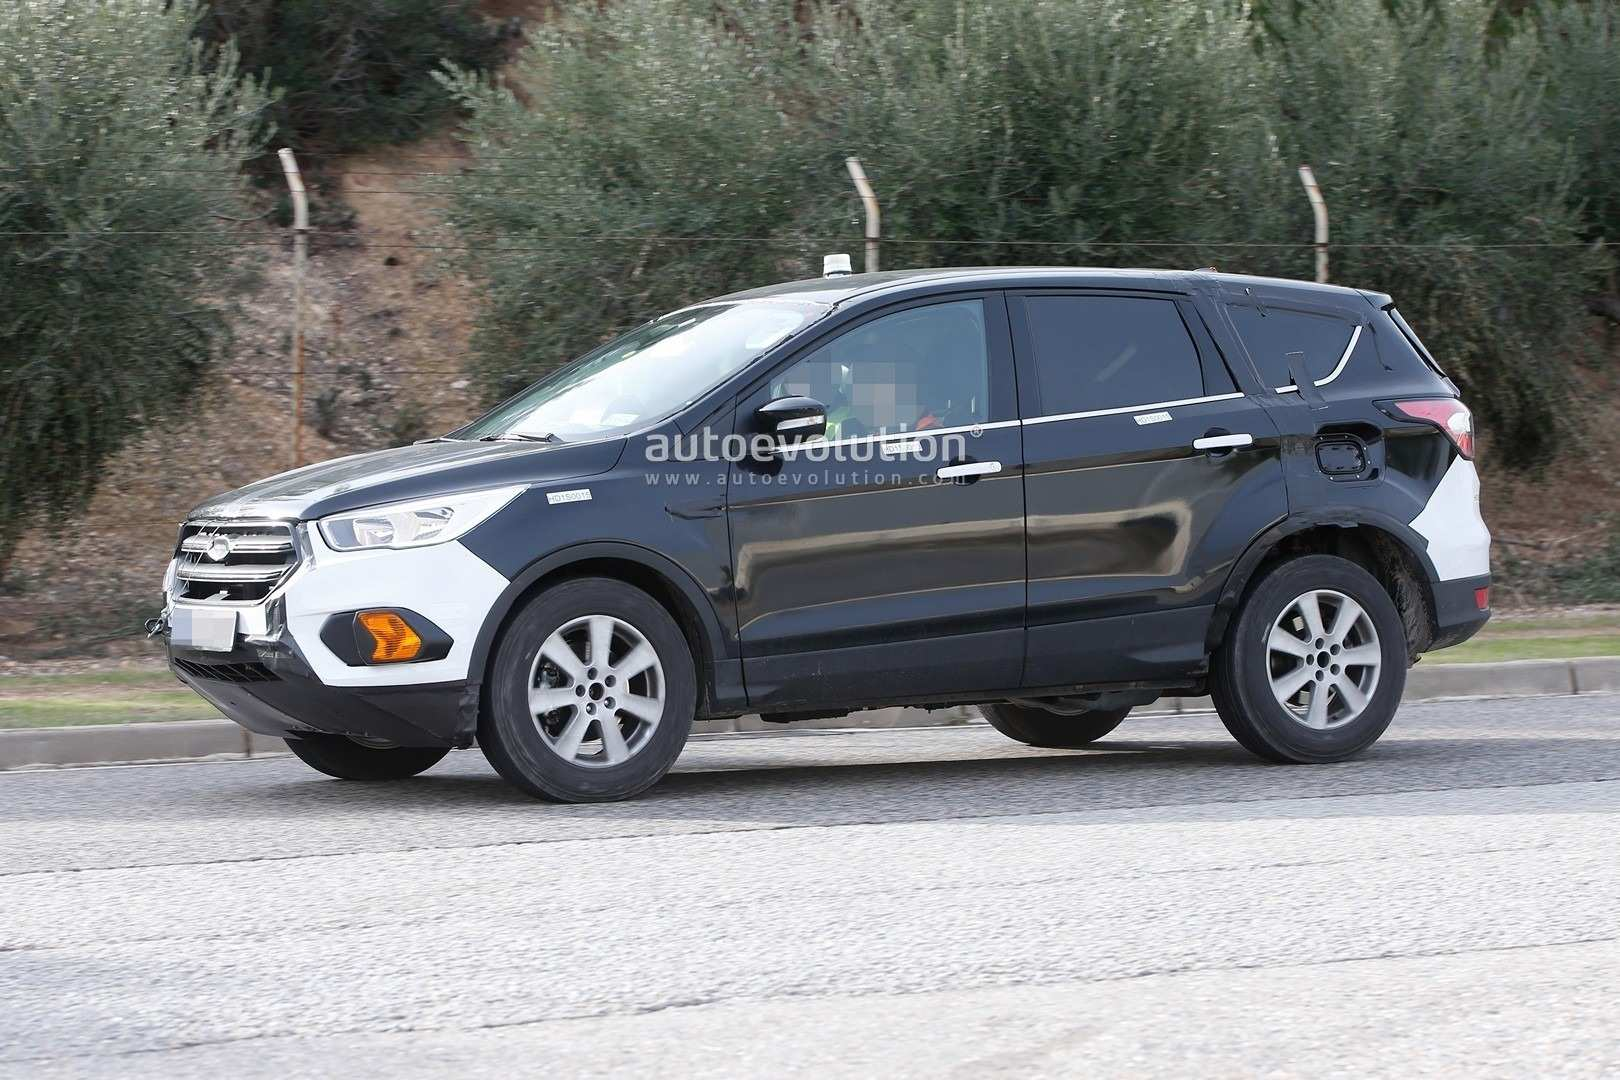 81 All New Ford Kuga 2020 Release Date Review And Release Date